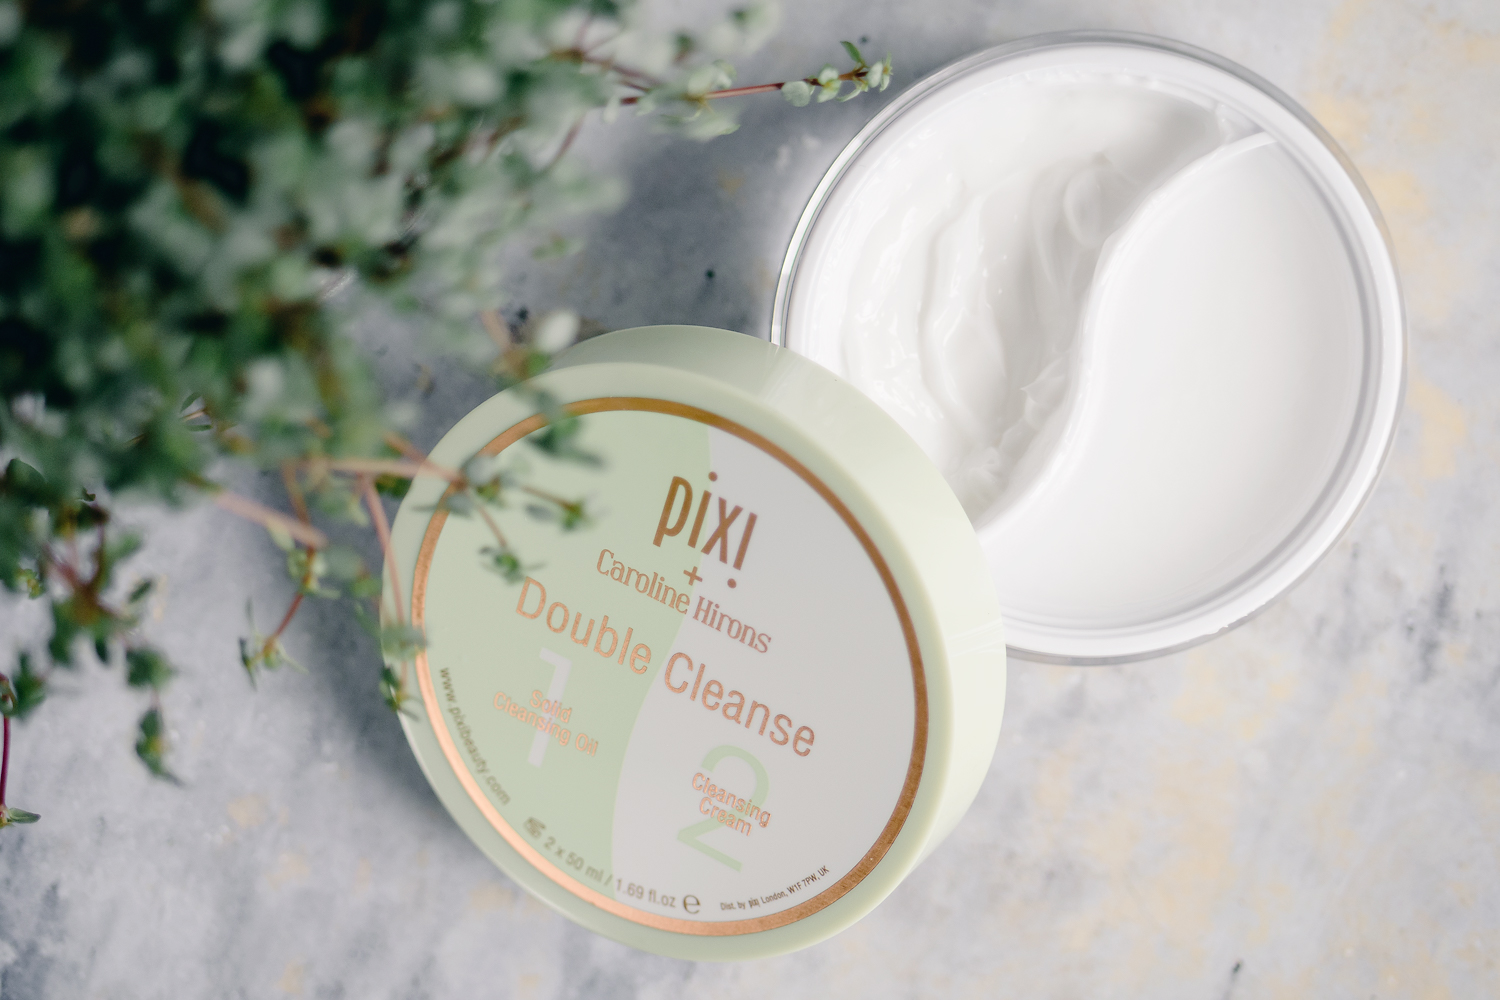 pixi by petra caroline hirons double cleanse